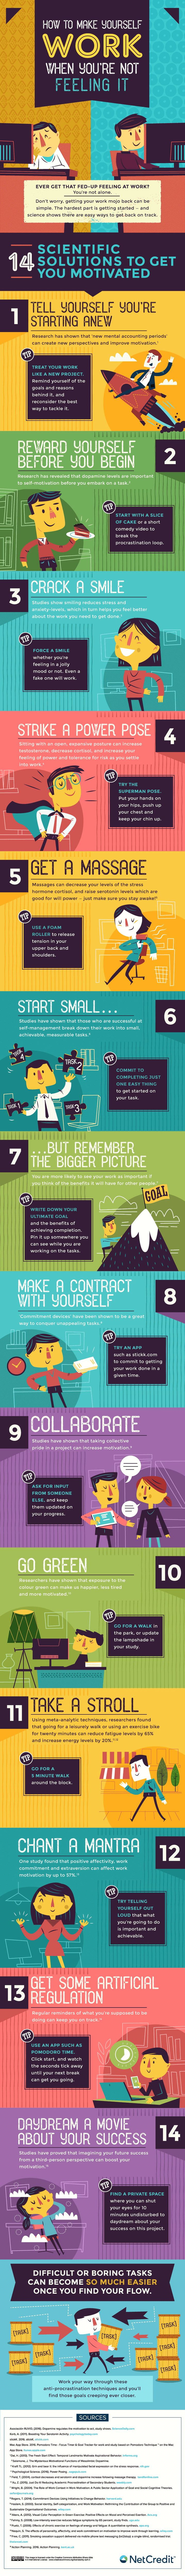 How to Make Yourself Work When You're Not Feeling It - #infographic